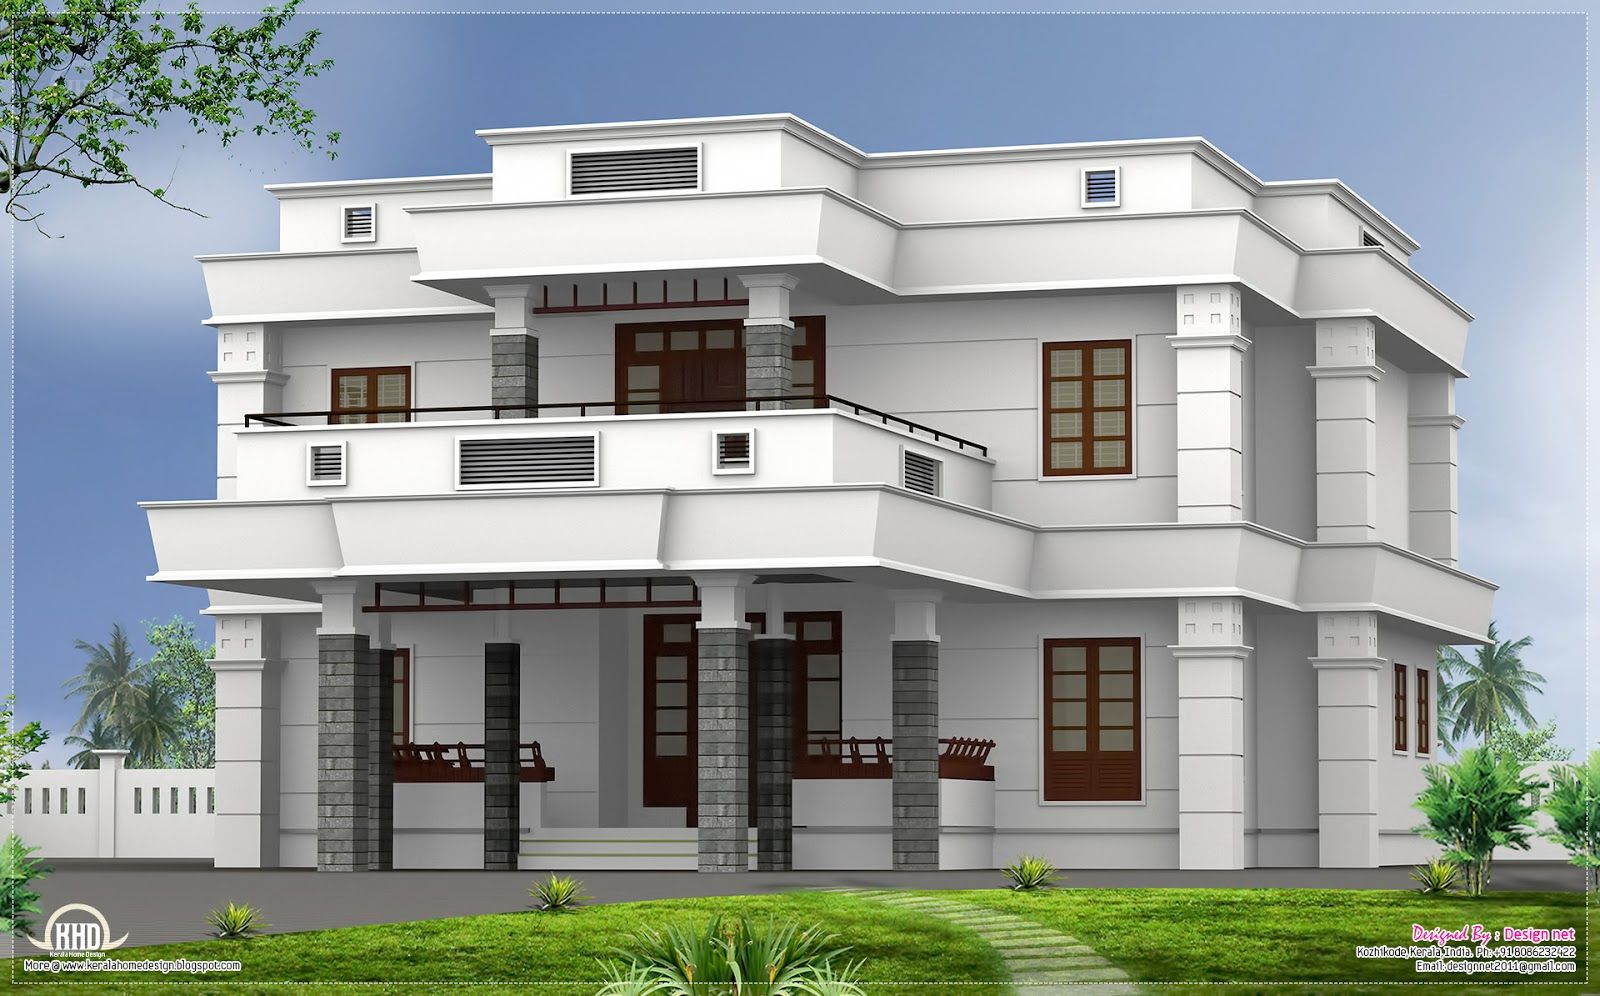 Flat roof homes designs bhk modern flat roof house for Modern villa plans and elevations